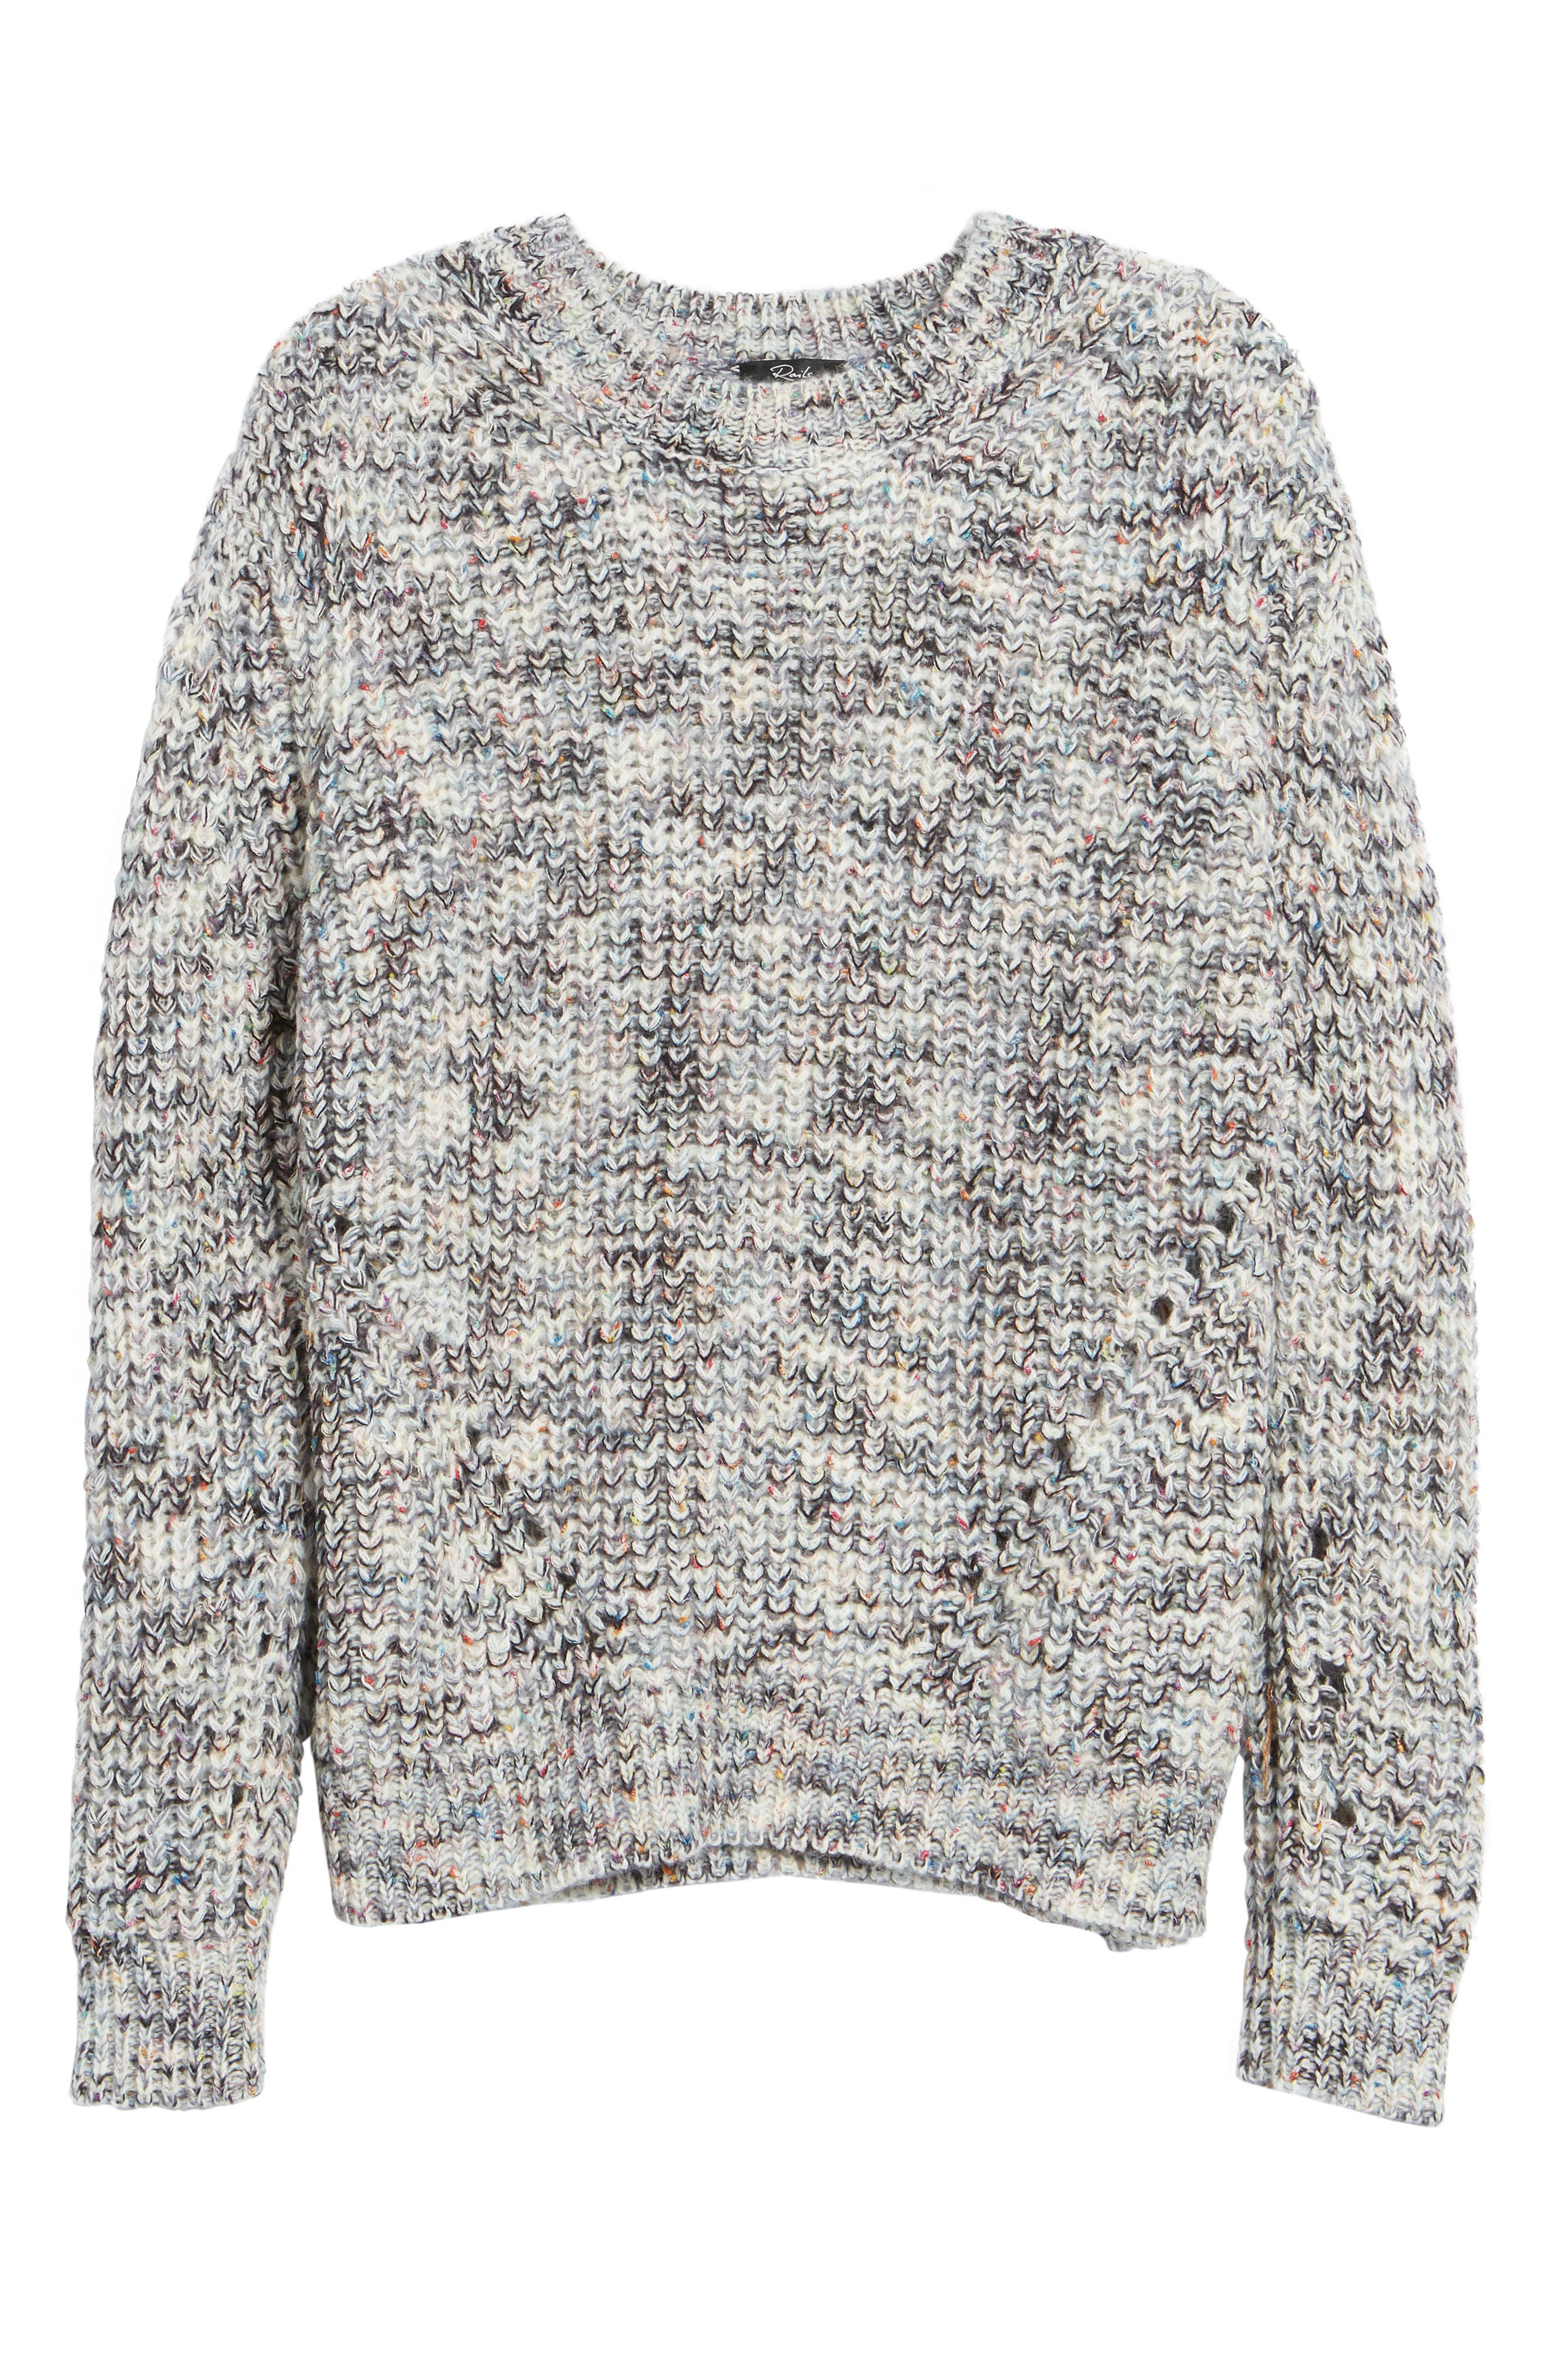 Lux Sweater,                             Alternate thumbnail 6, color,